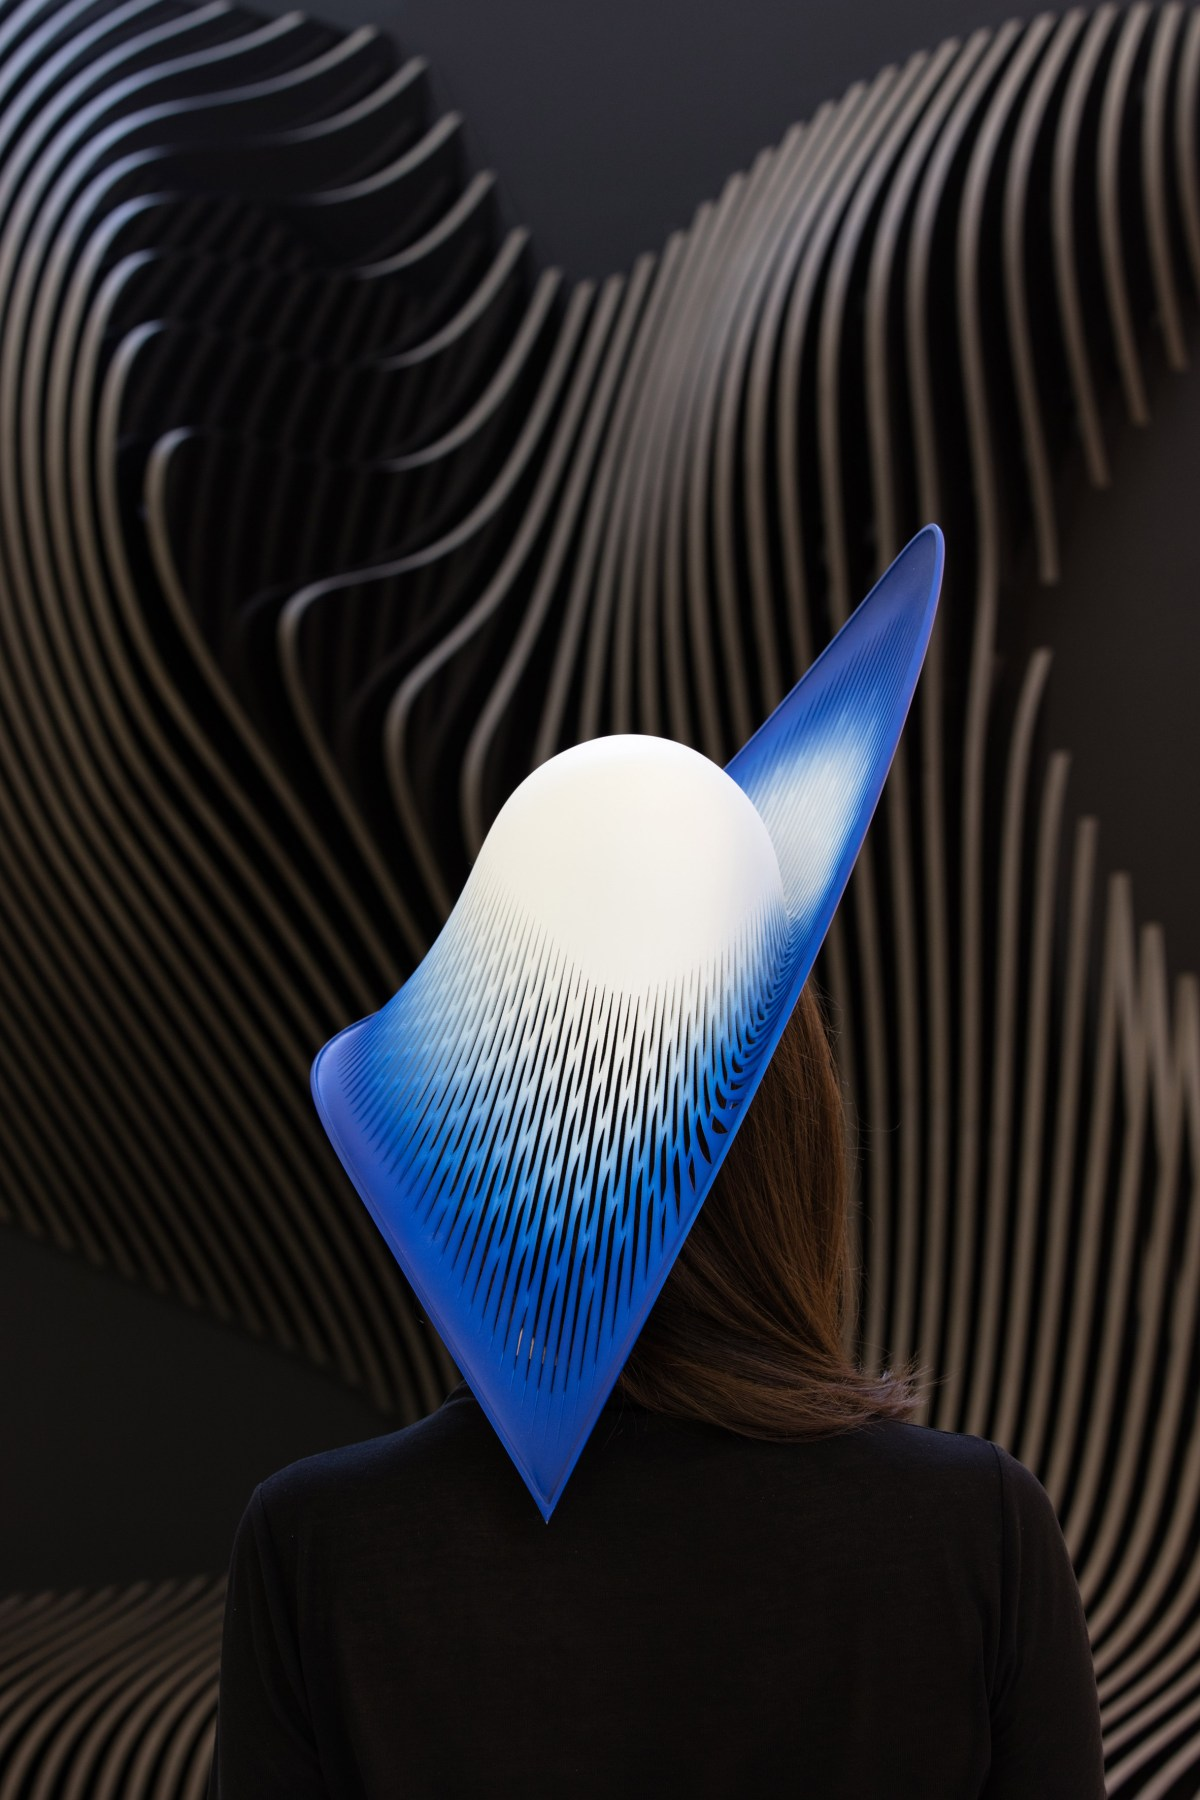 high-line-hat-patrick-schumacher-zaha-hadid-architects-520-West-28th_dezeen_2364_col_2